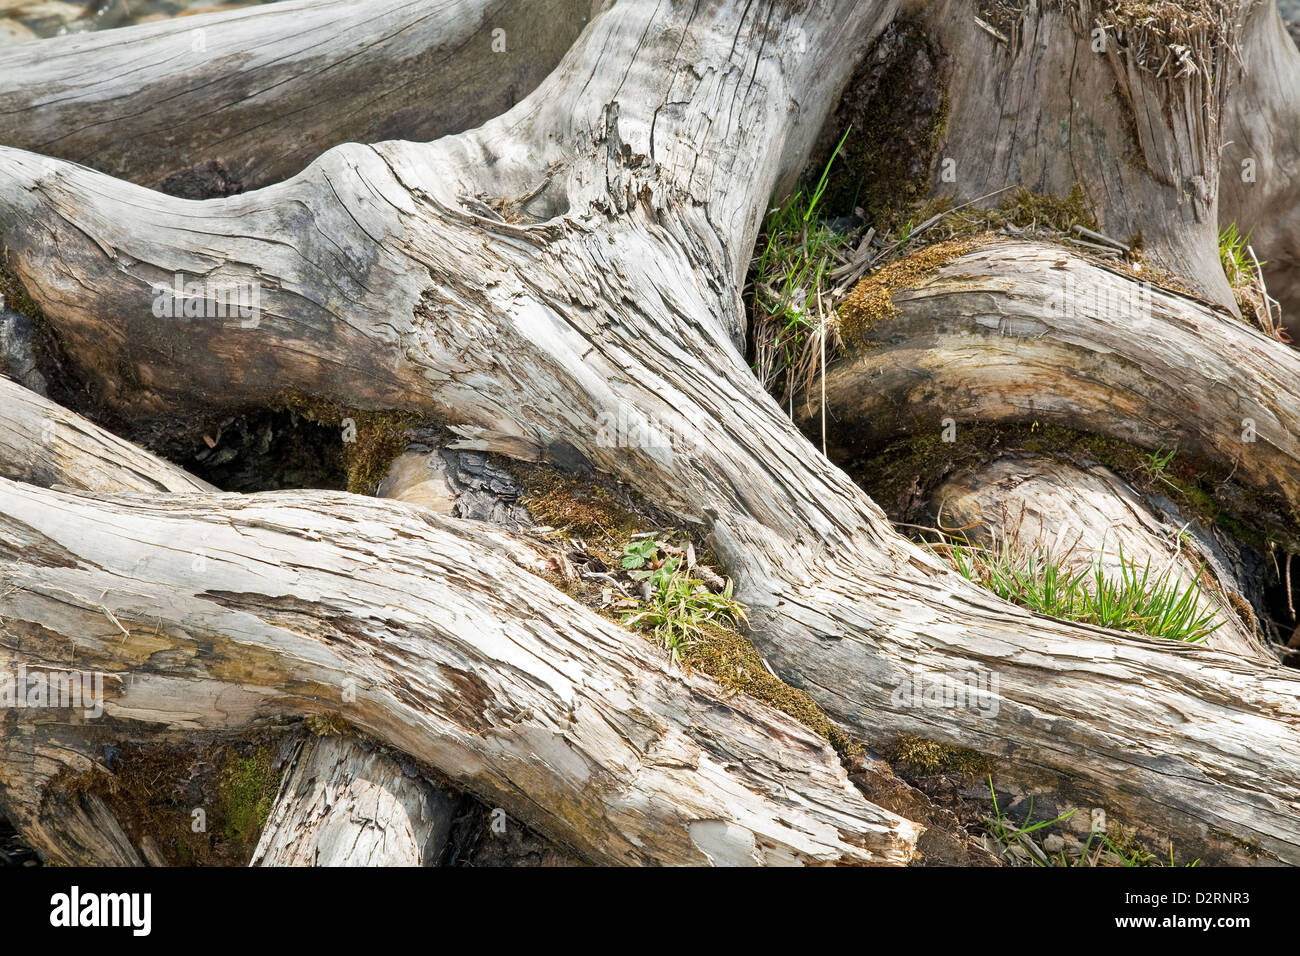 Old Tree Stock Photos Amp Old Tree Stock Images Alamy